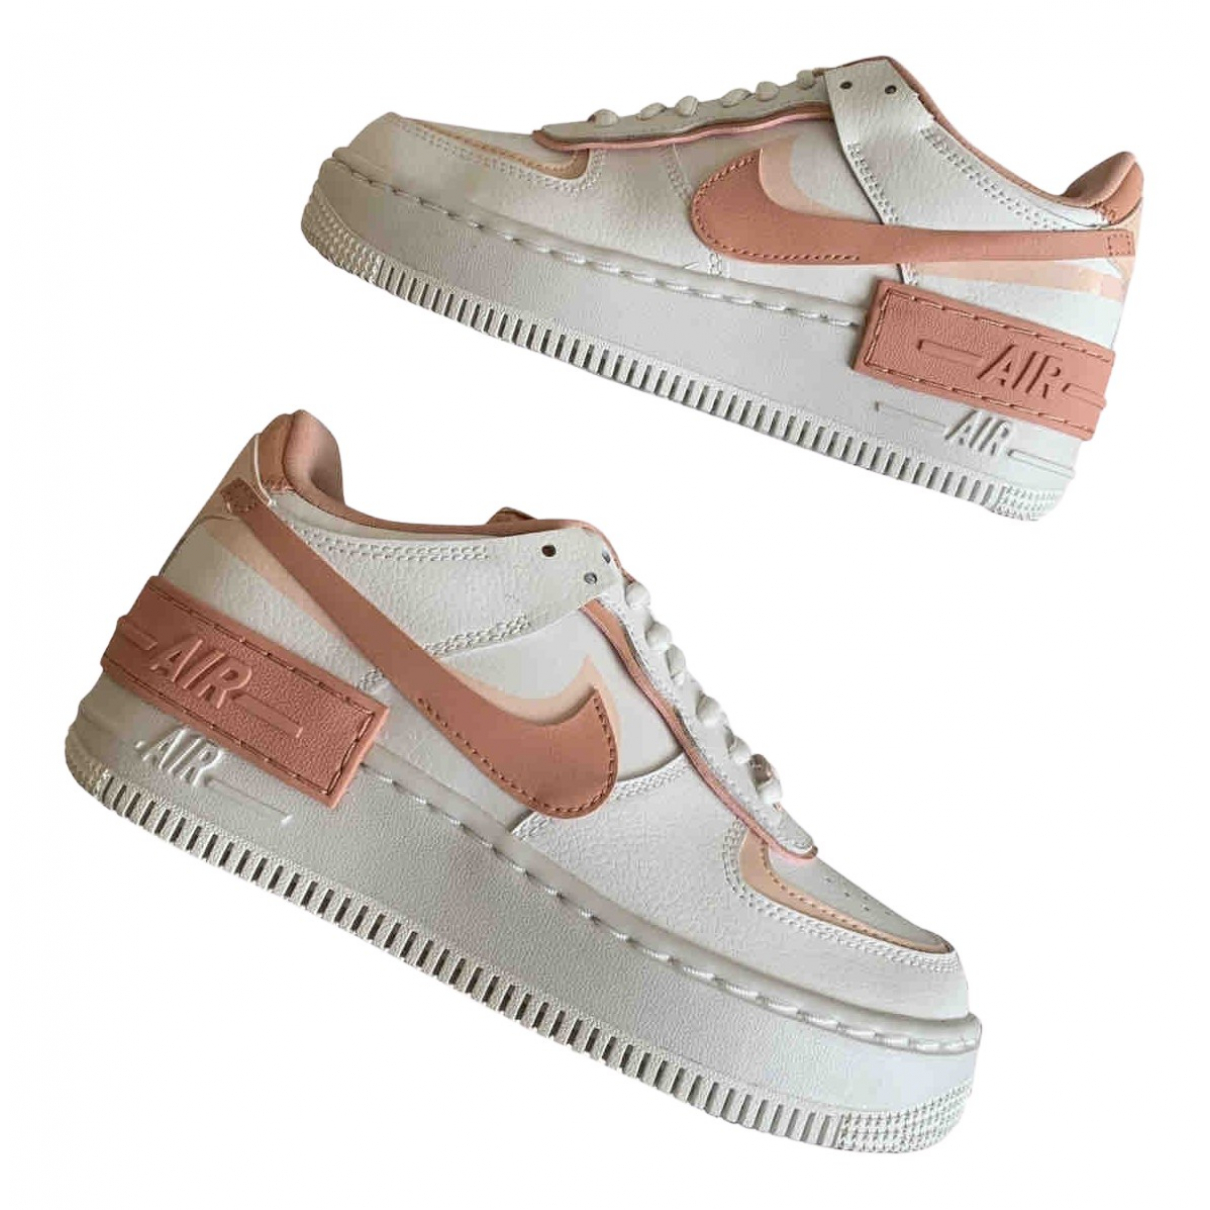 Nike Air Force 1 White Leather Trainers for Women 36 EU